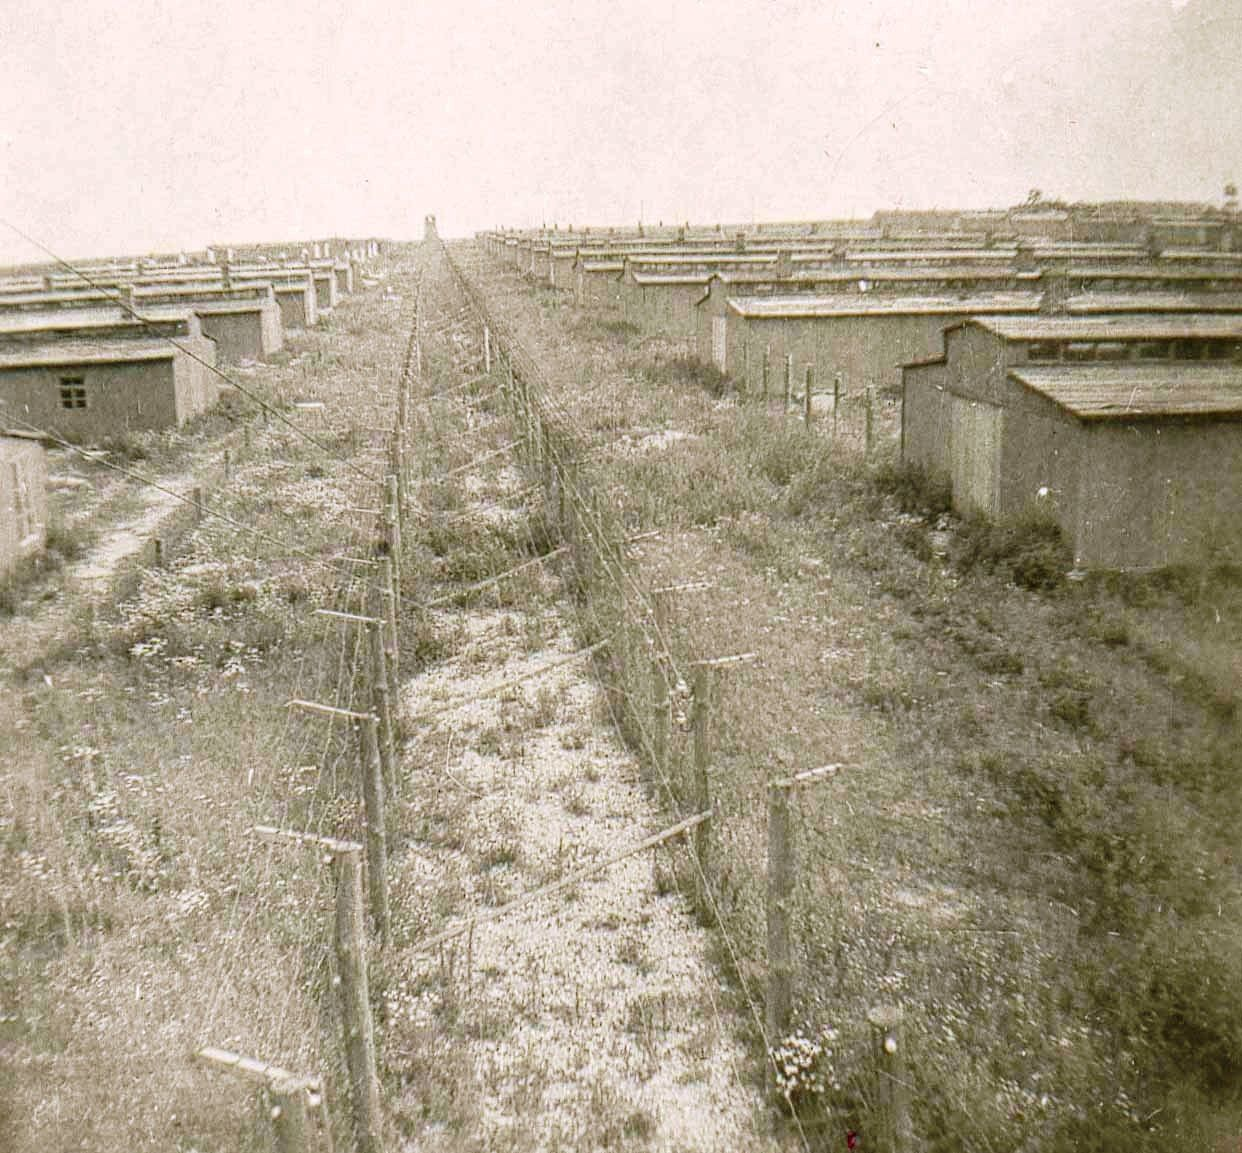 Row of Barracks at Majdanek. Photo taken in 1944 from the watchtower.